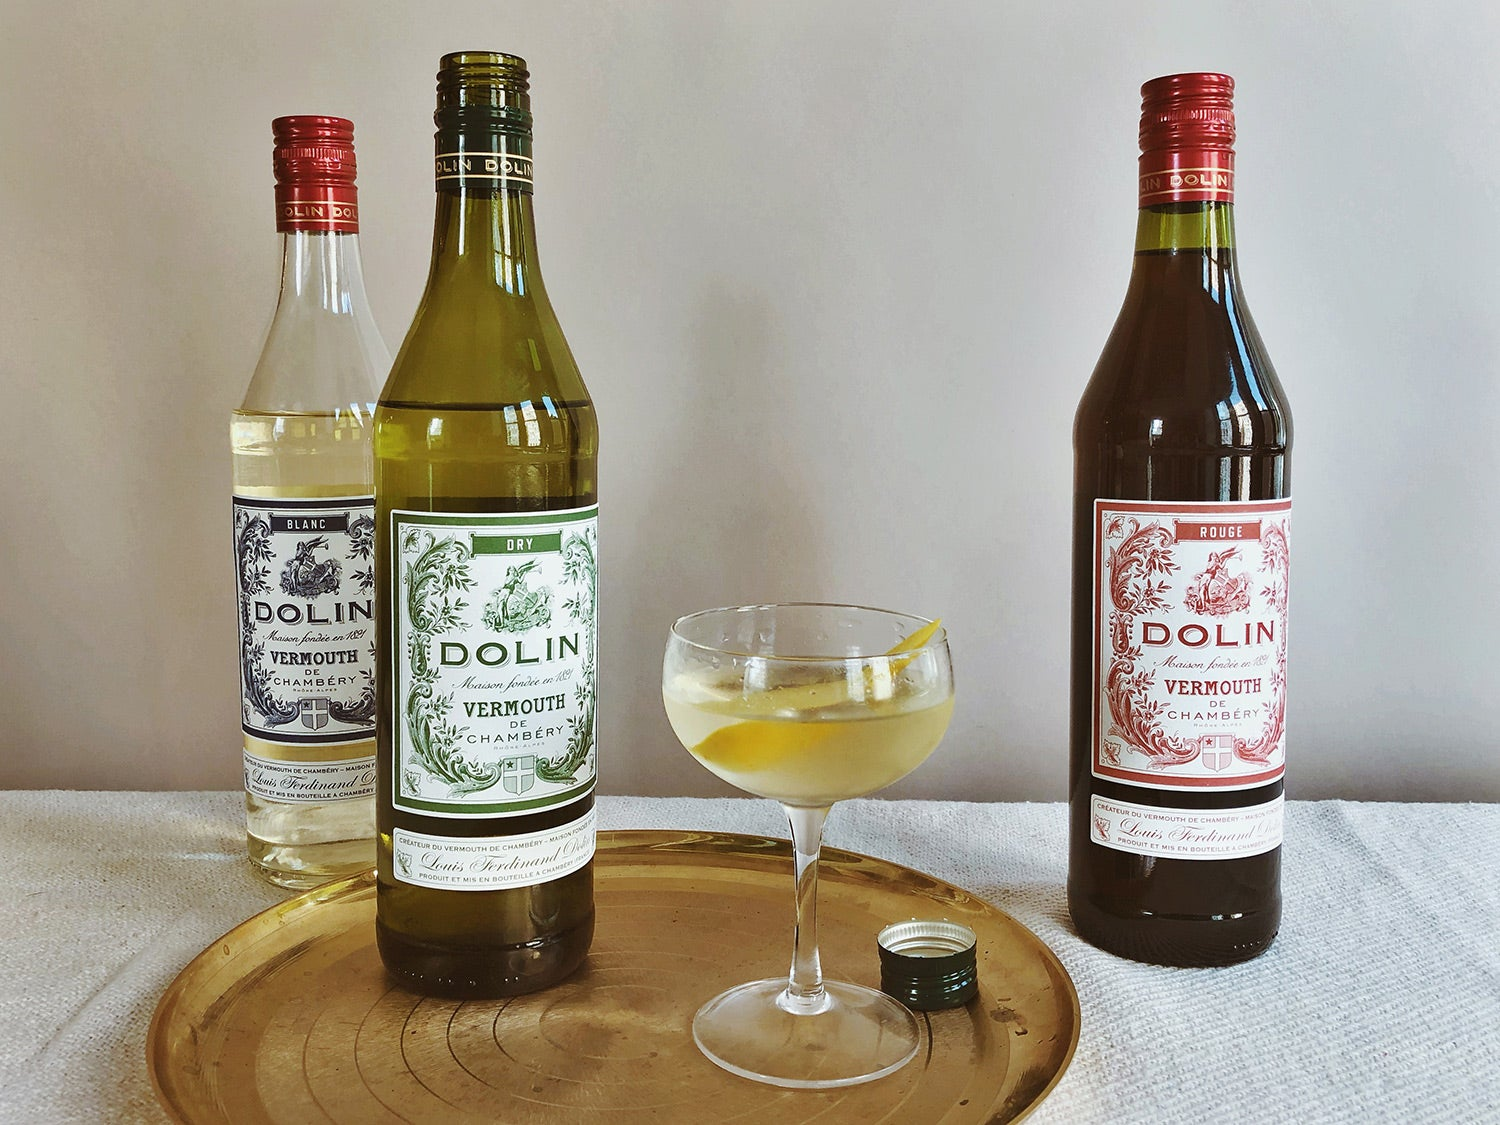 Dolin Vermouth de Chambéry on gold tray